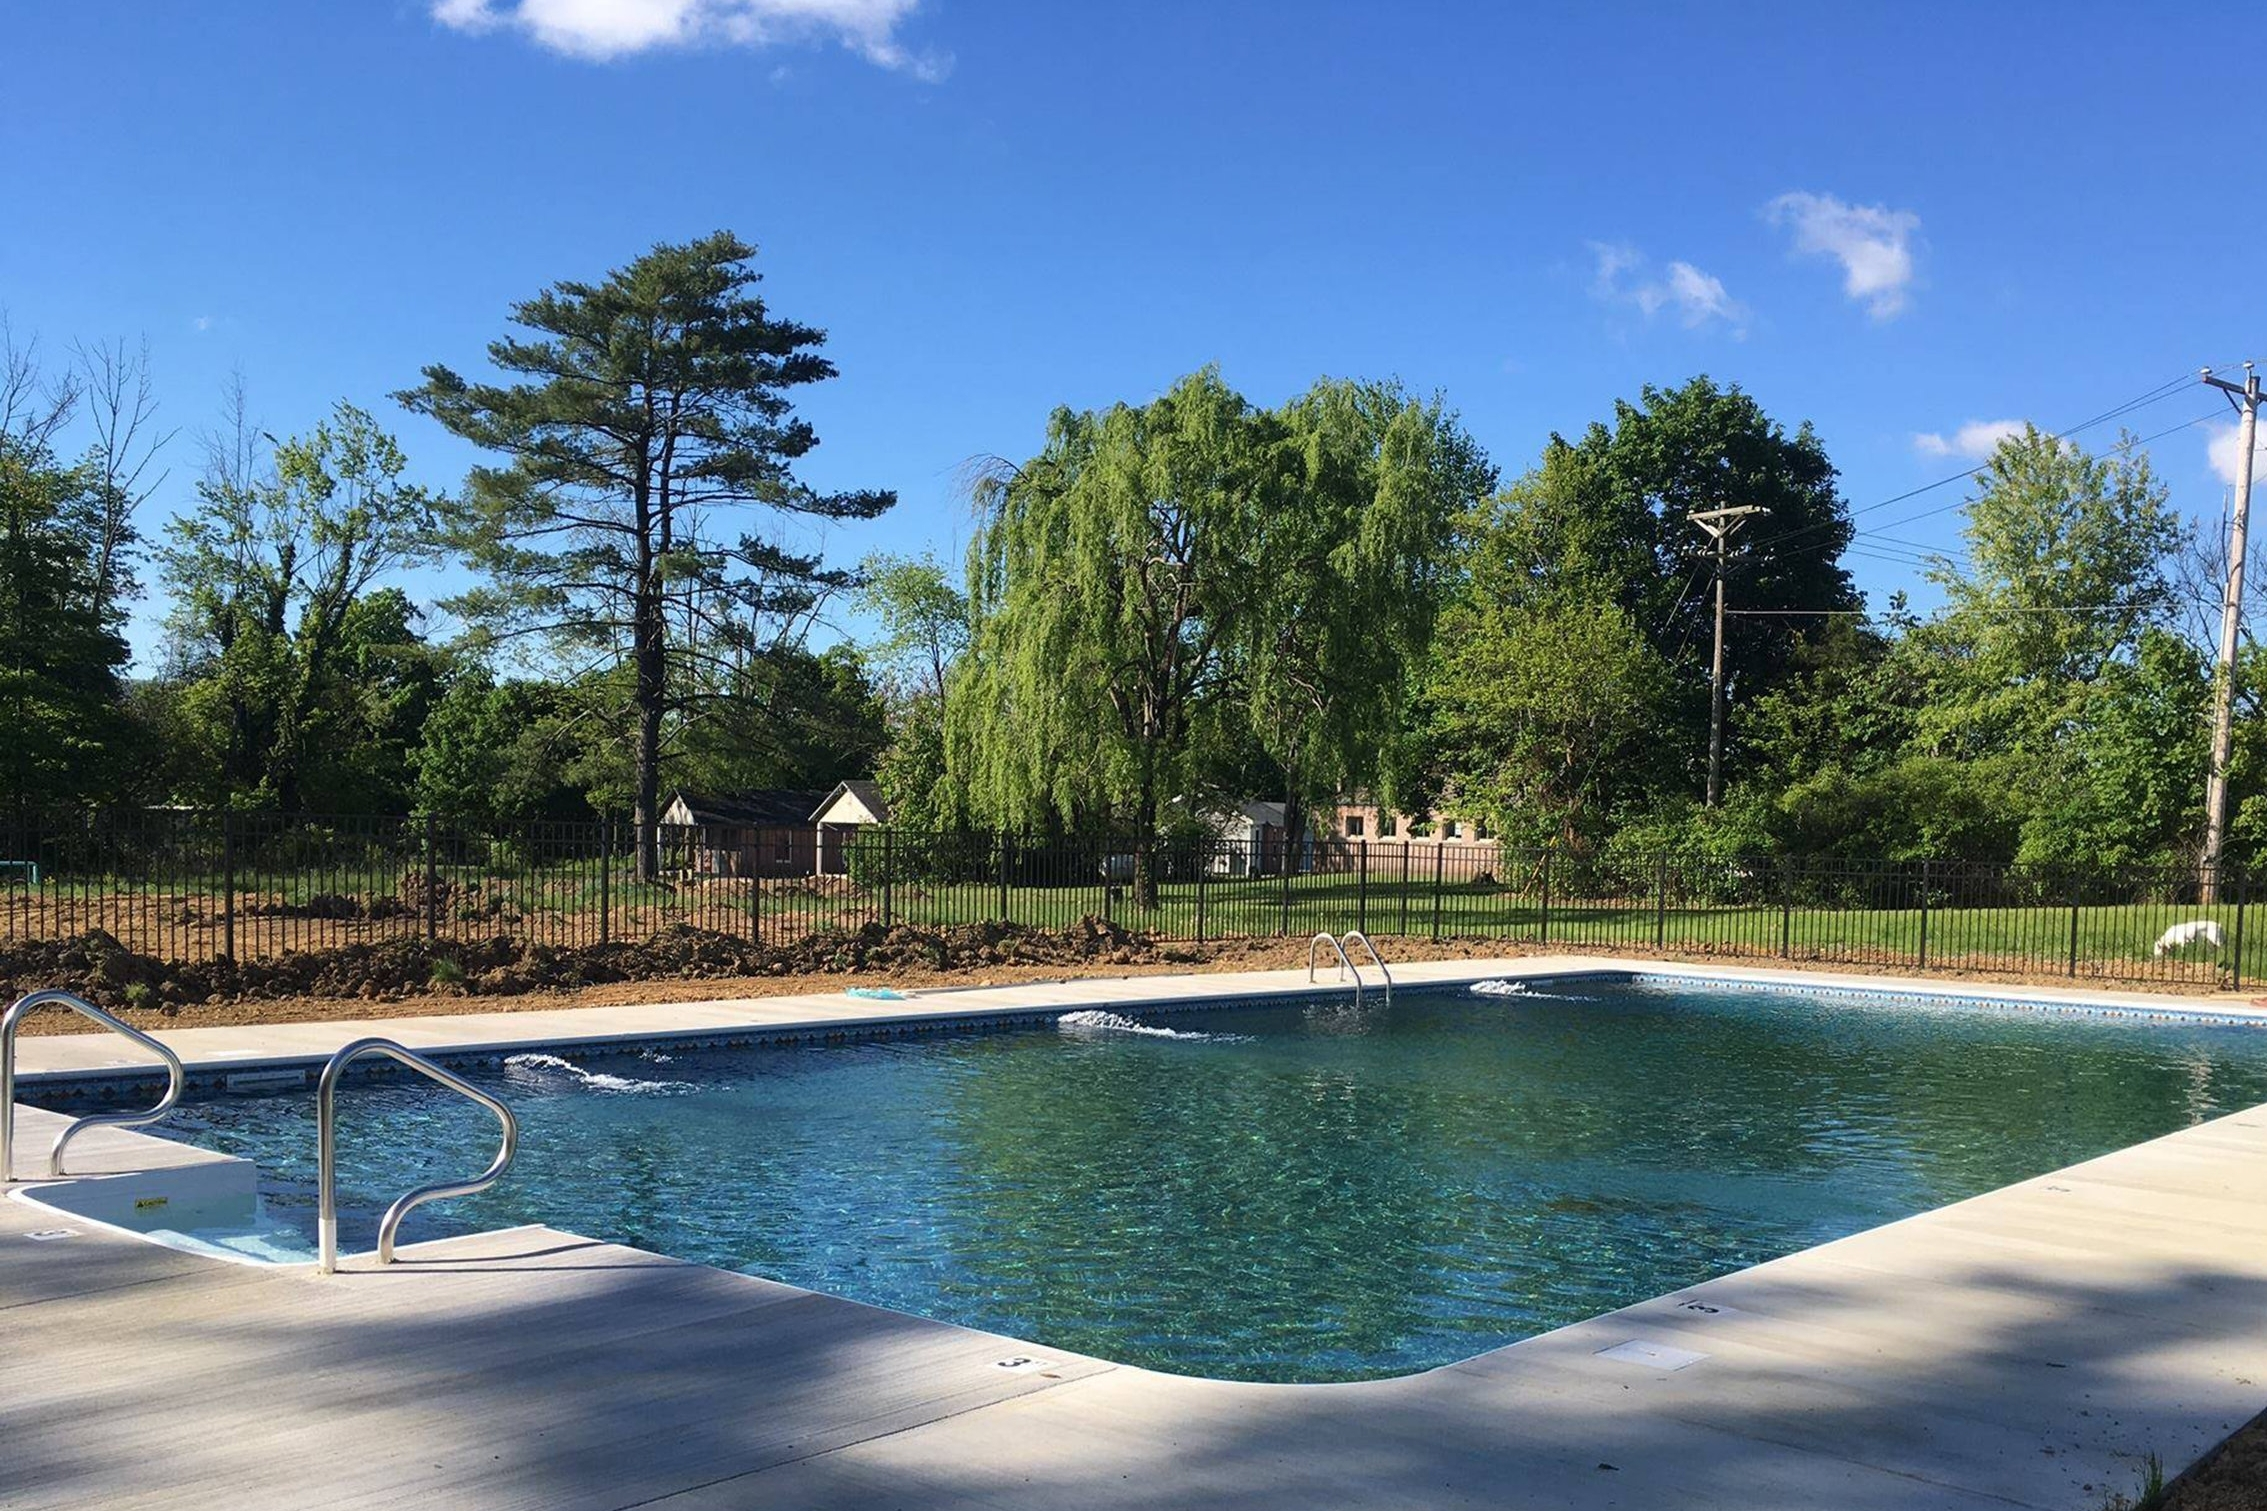 Fully ACCESSIBLE Pool Available for use during summer months.